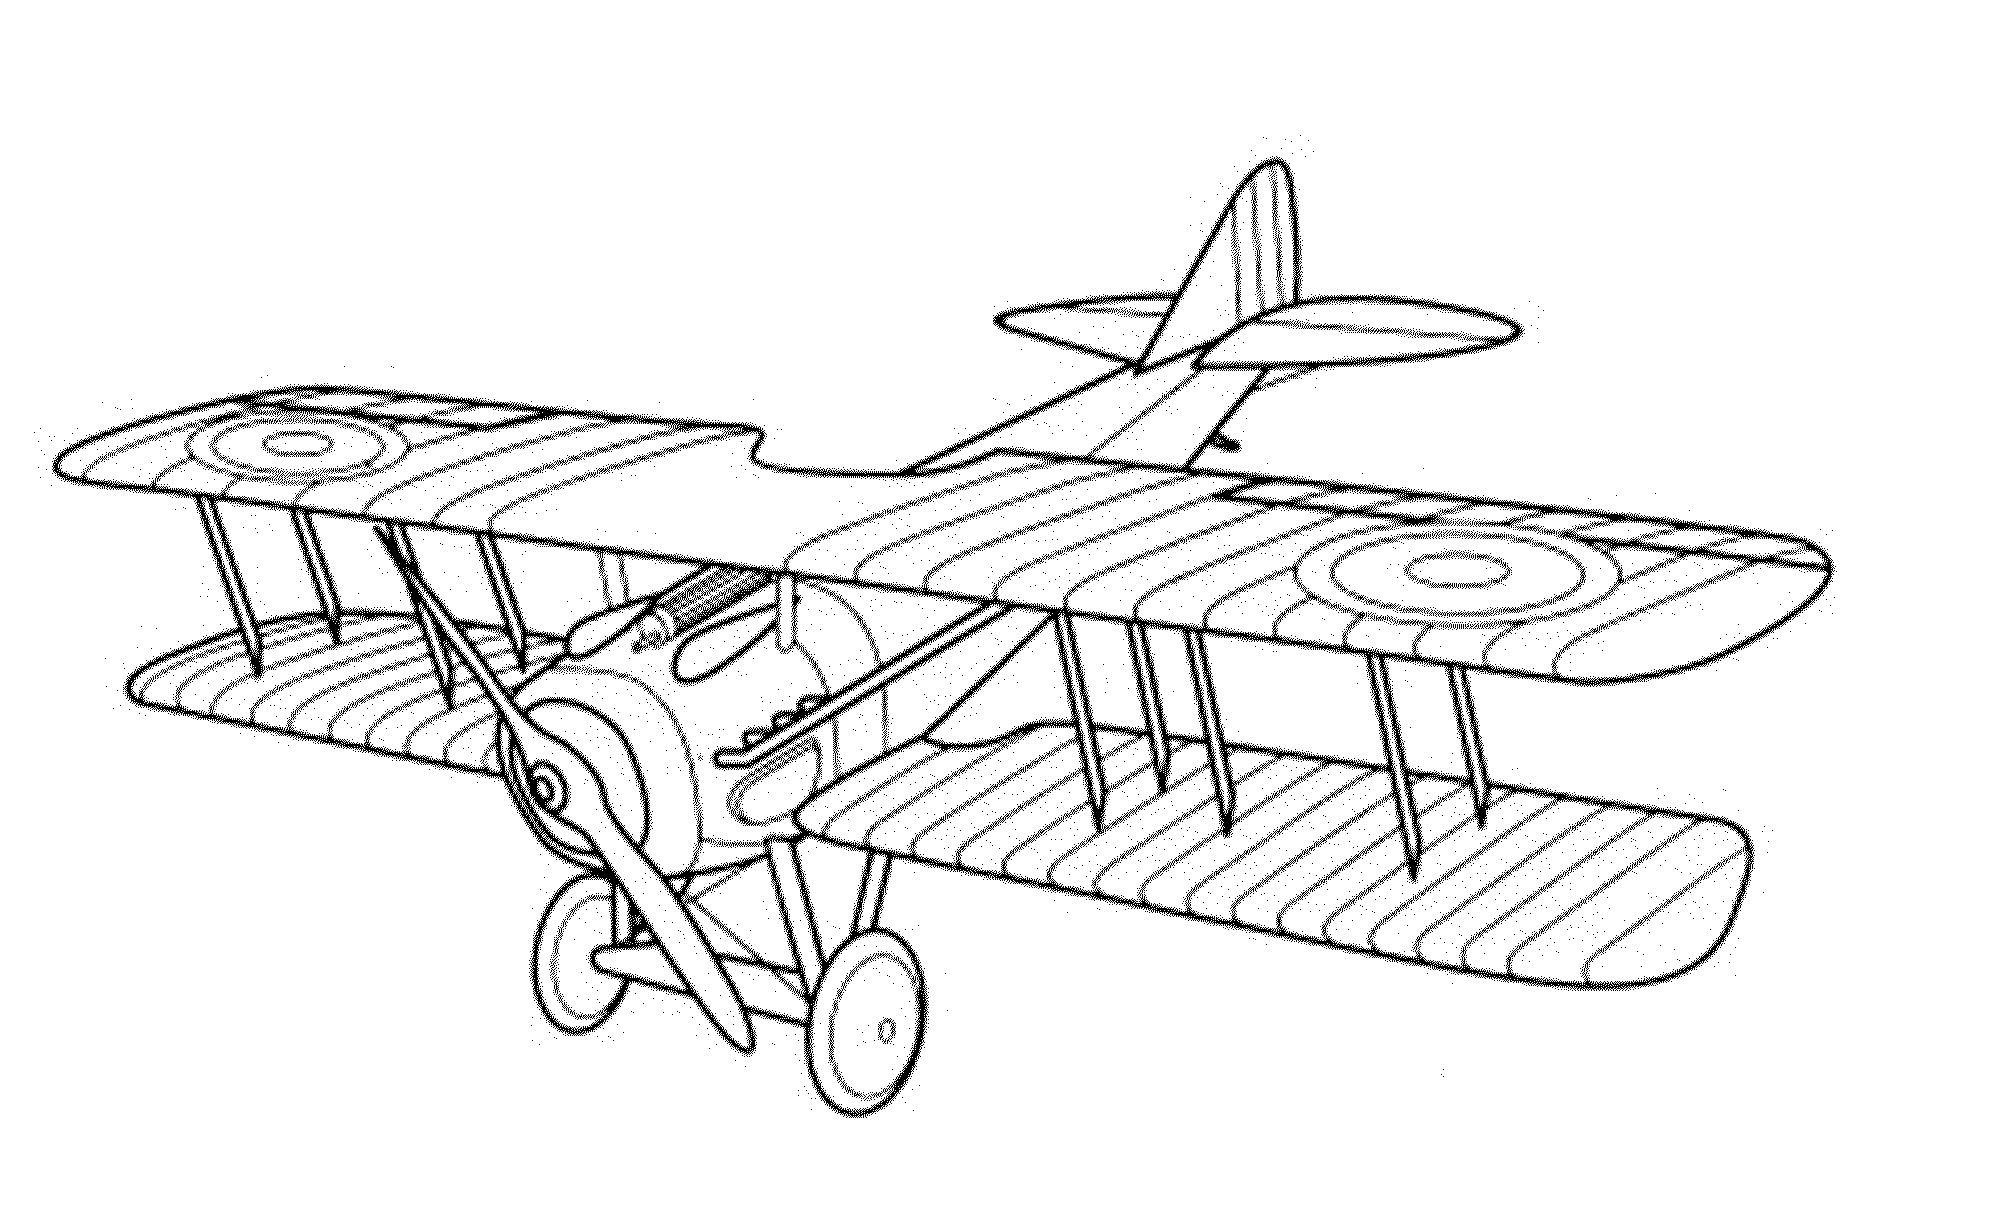 46 Top Jet Coloring Pages Printable Download Free Images